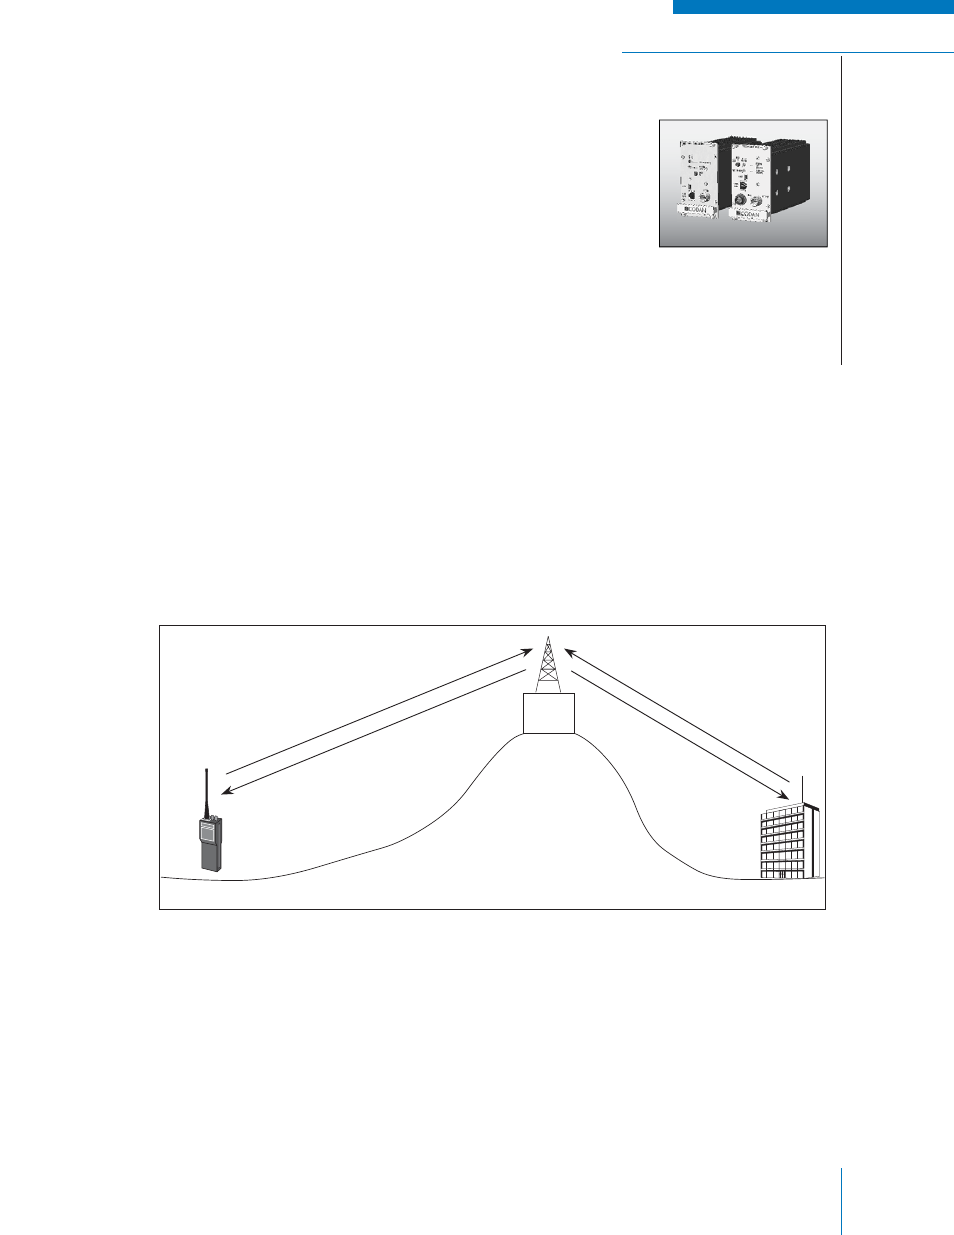 Chapter 2: repeater system configurations, Determining